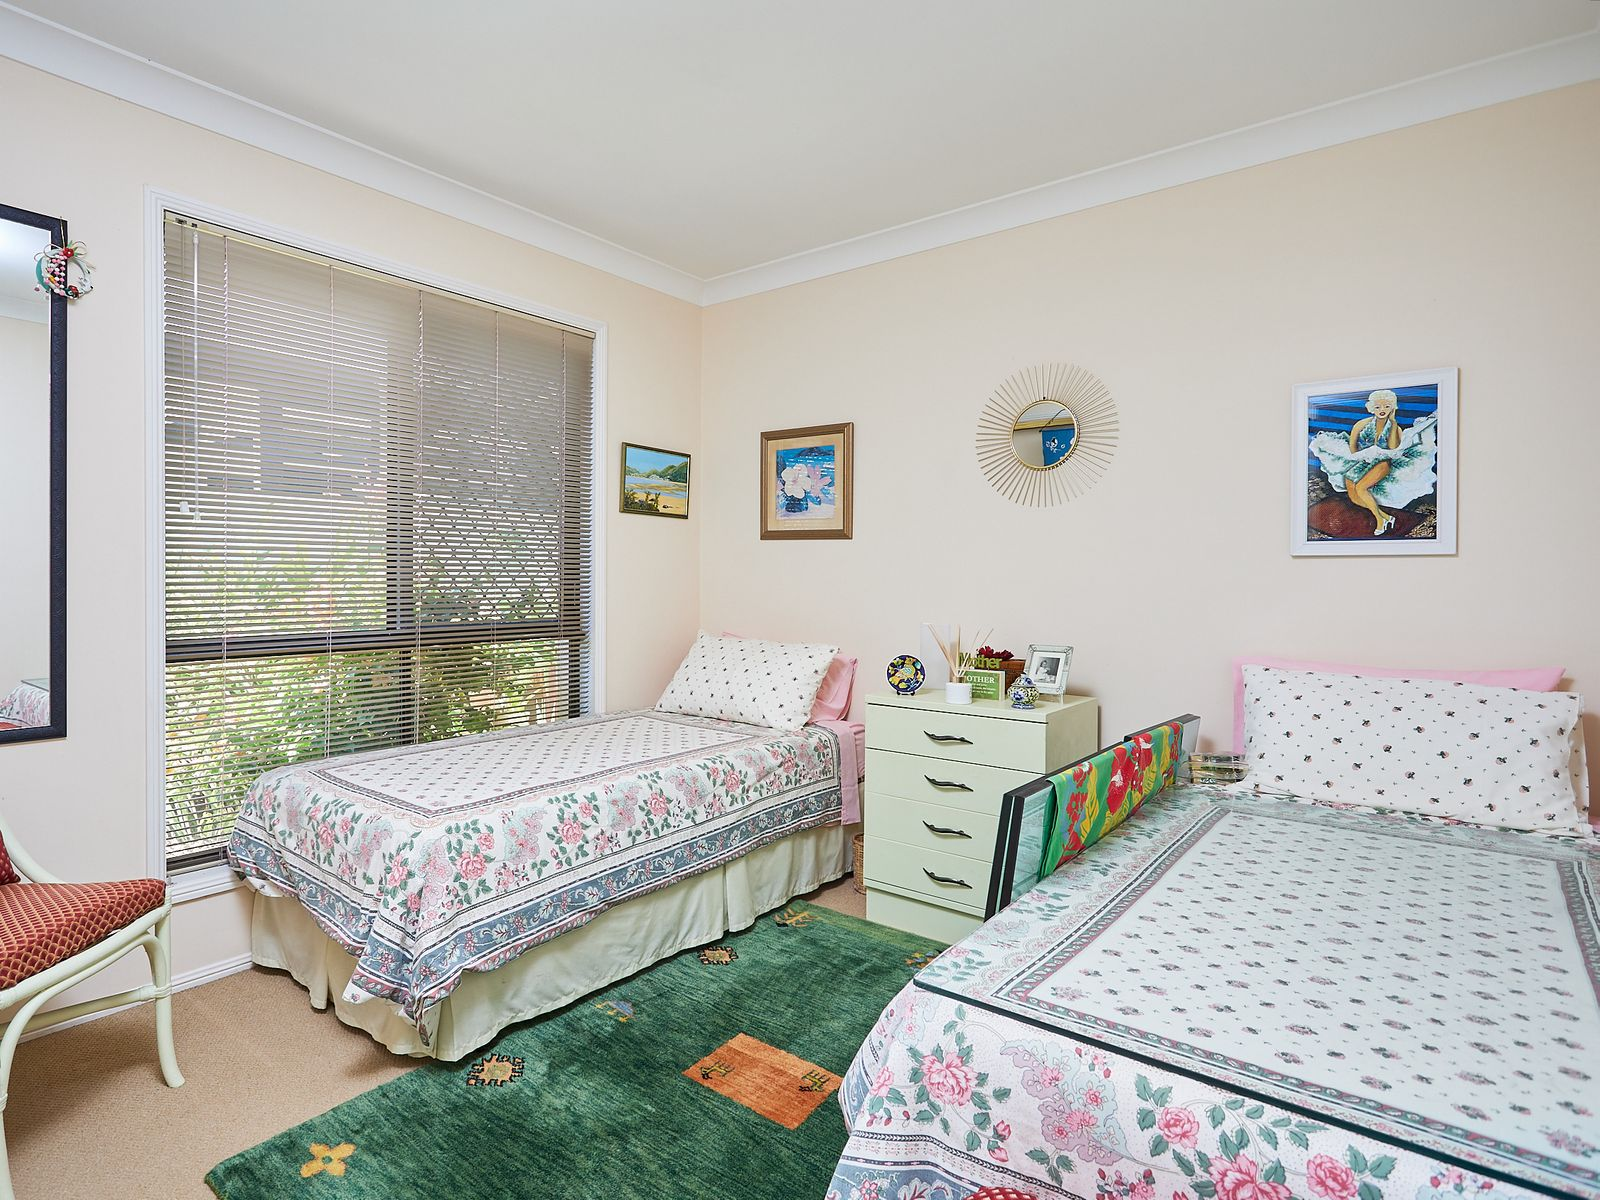 2/9 Lee Road, Runaway Bay, QLD 4216